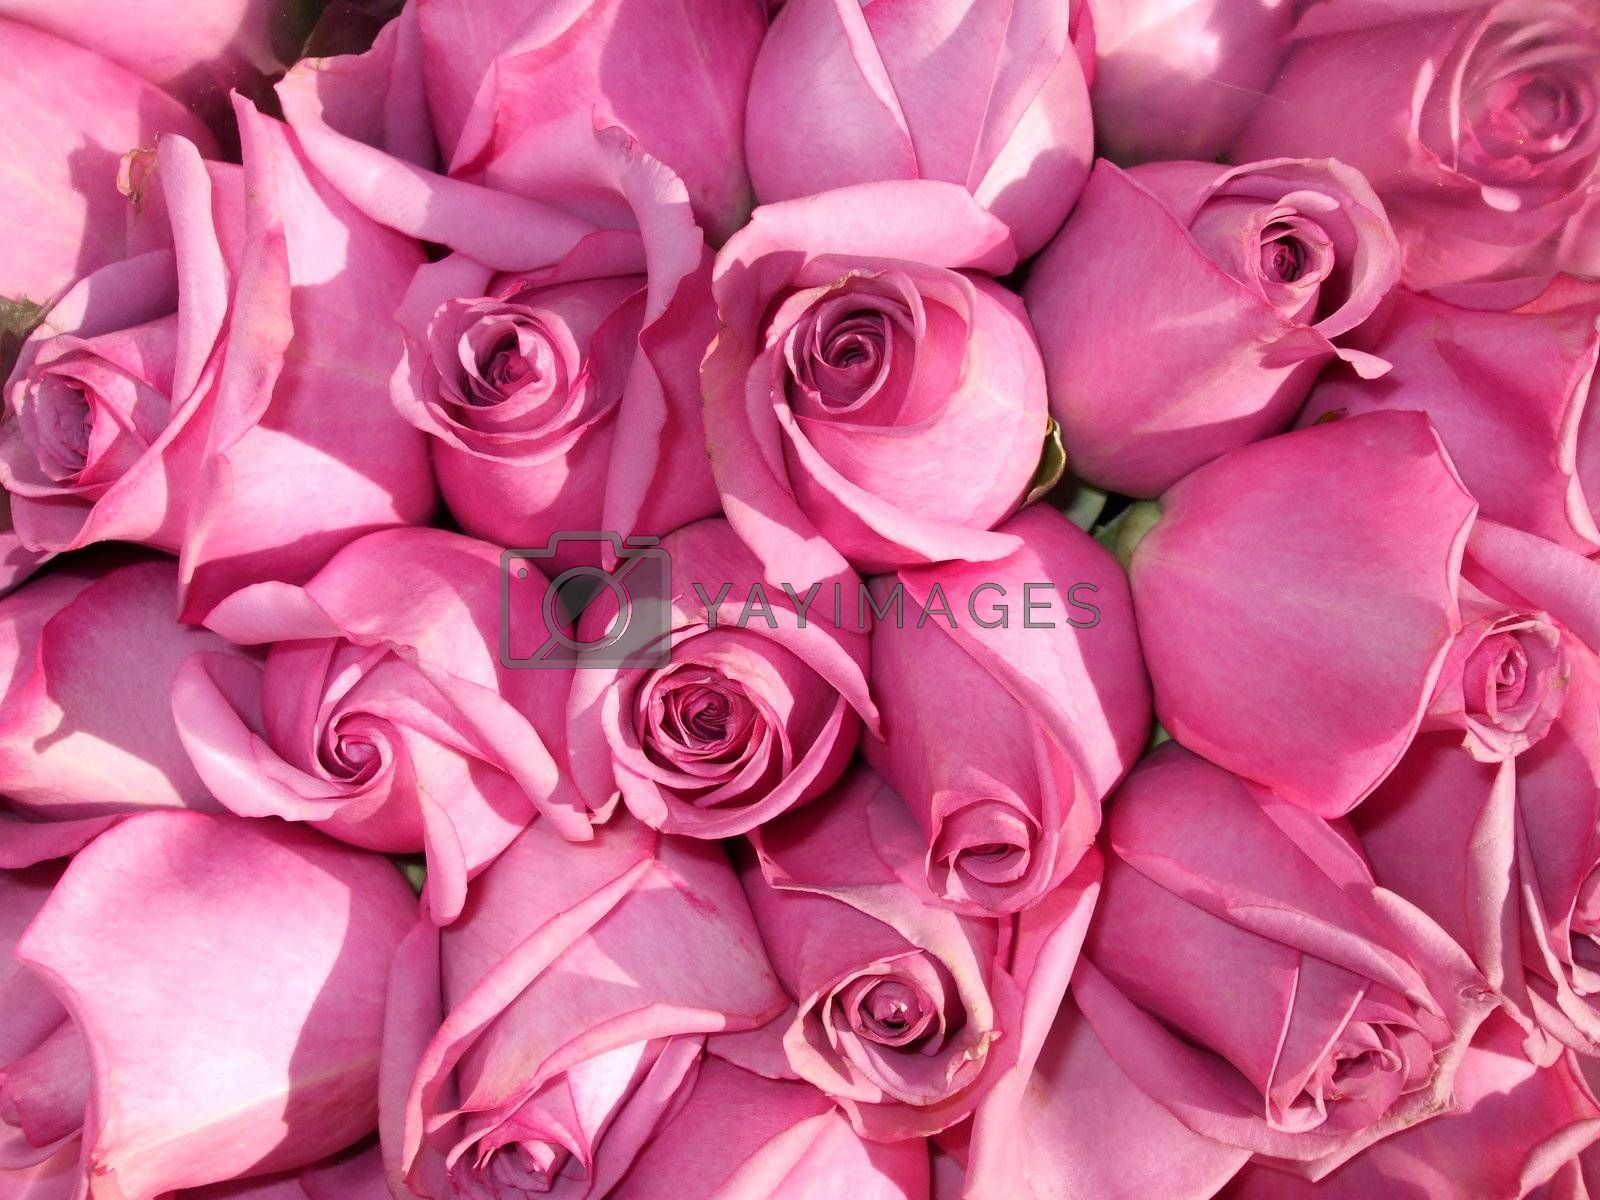 A bunch of closed pink roses